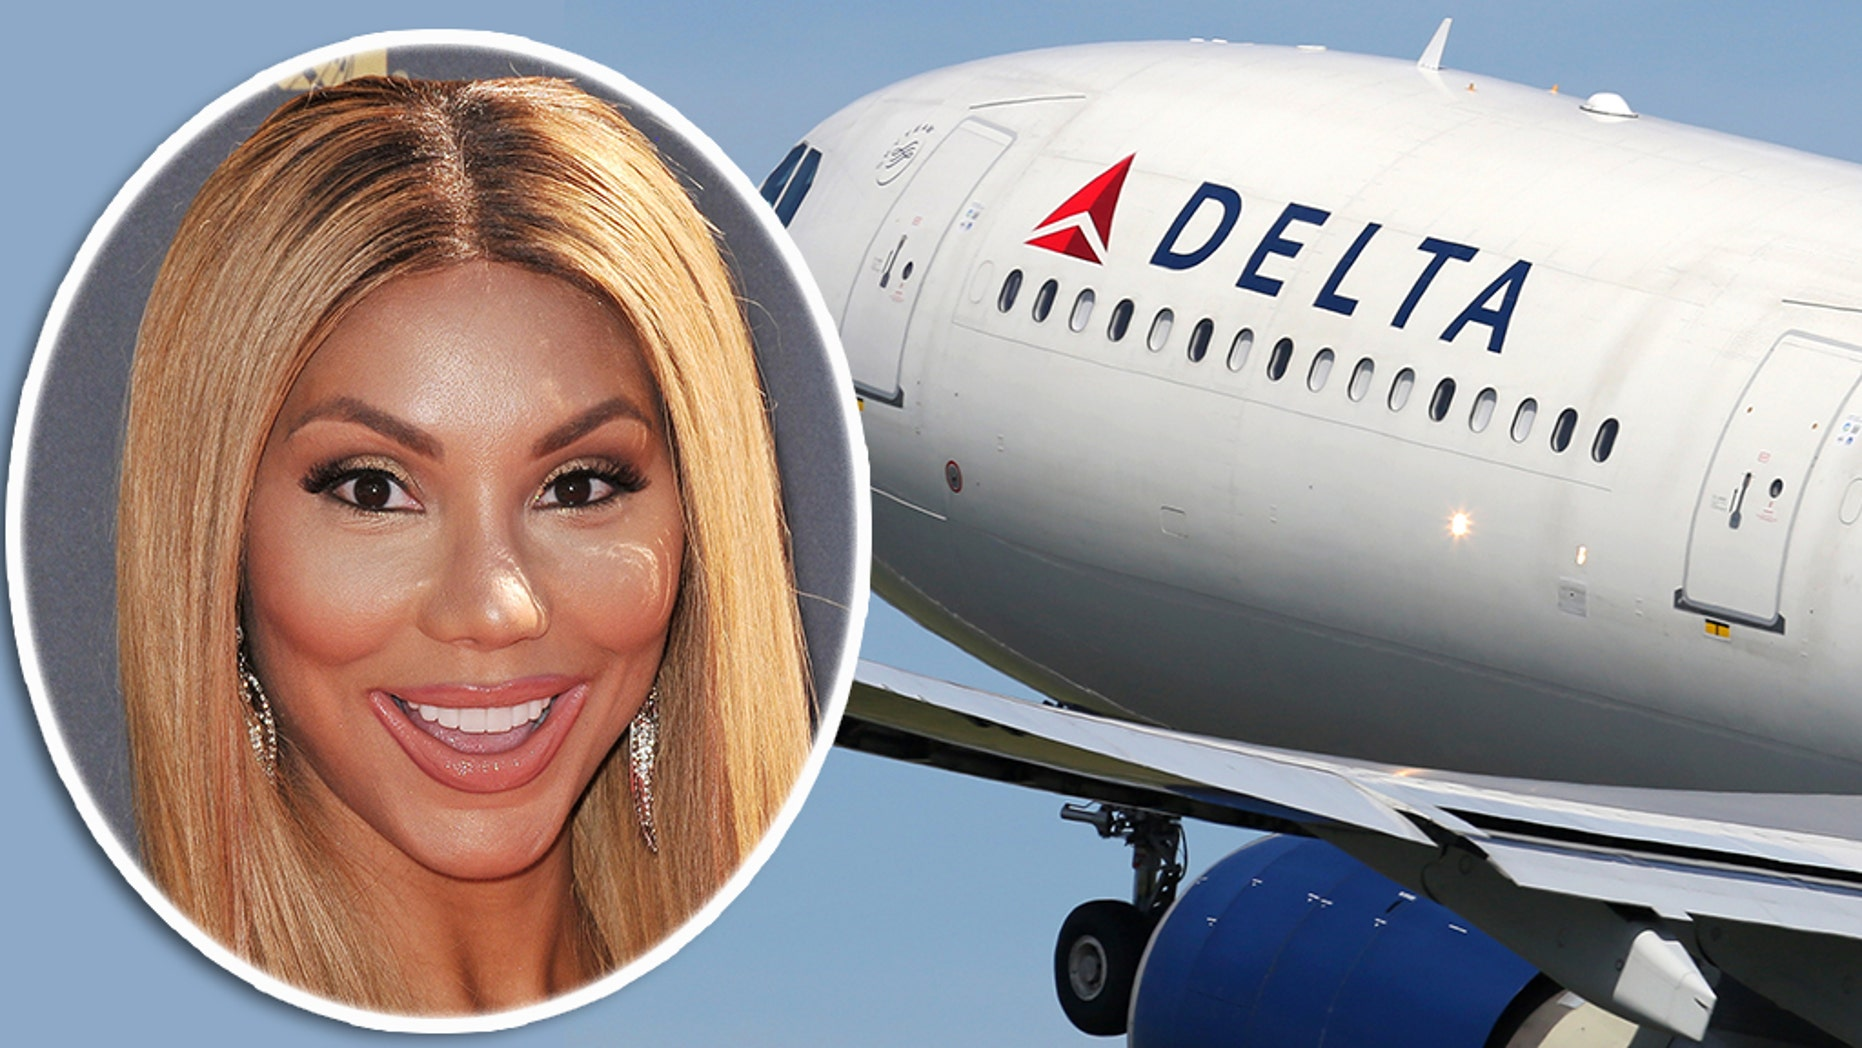 According to the airline, Tamar and others she was flying with requested to deplane – which they were allowed – but refused to take their belongings with them off the plane.